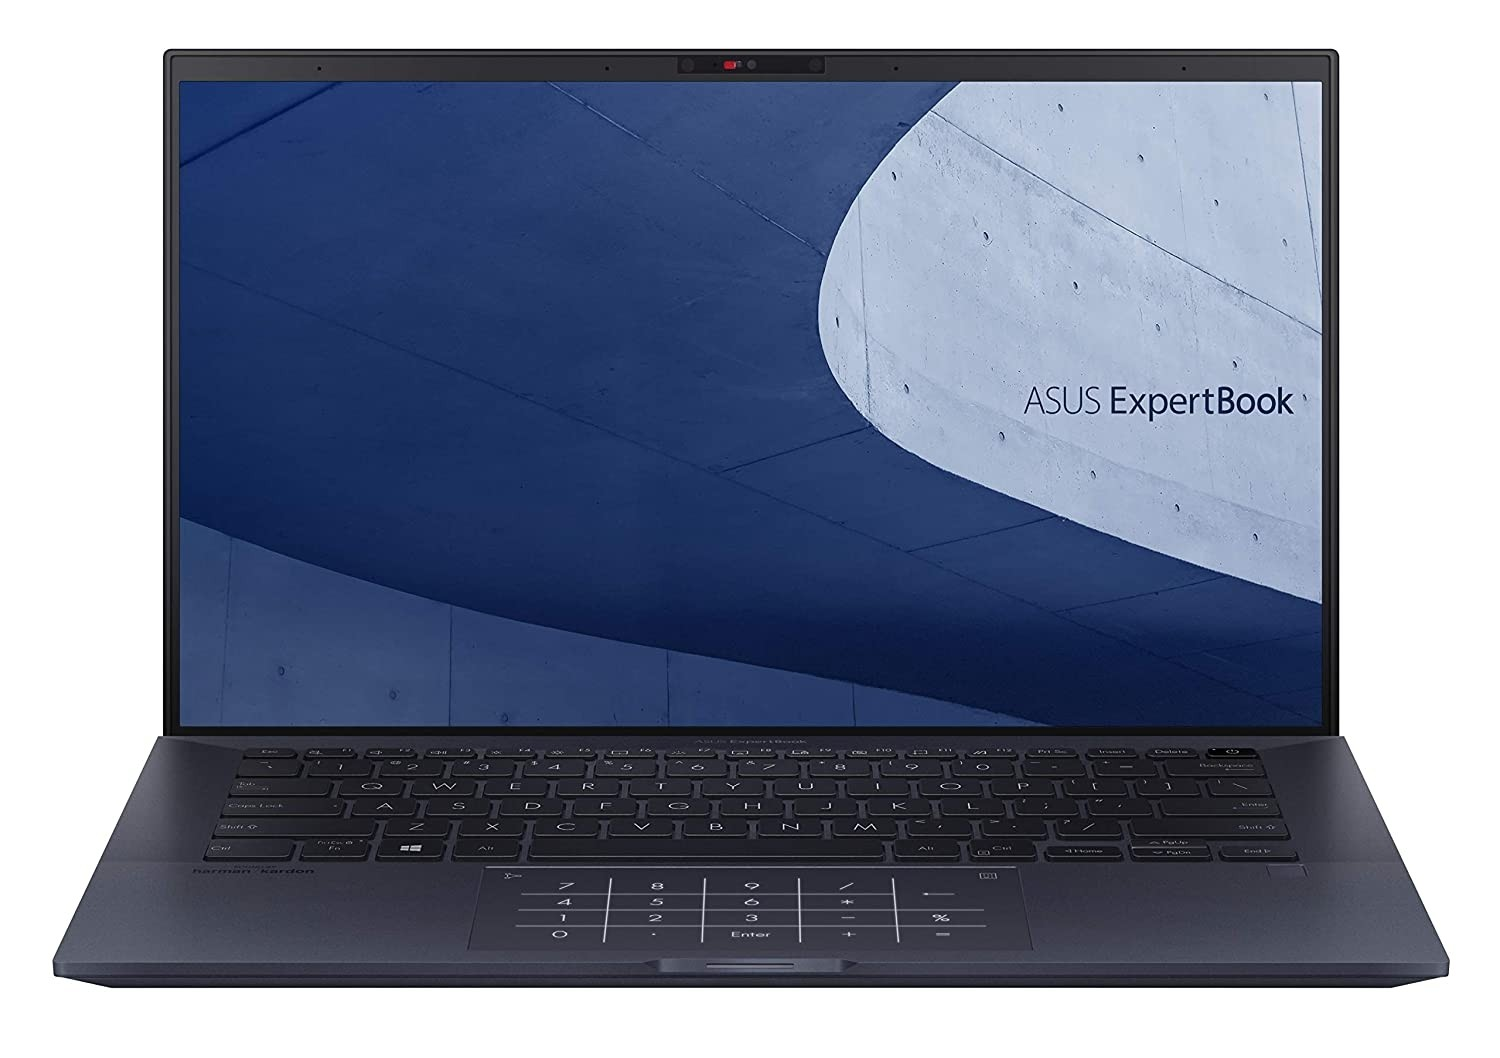 Refurbished laptops & desktops - ASUS EXPERTBOOK B9 (B9450FA) 14 INCH NOTEBOOK(I7-10510U,16GB, 1TB PCIEX4, WIN PRO ) B9450FA-BM0336R